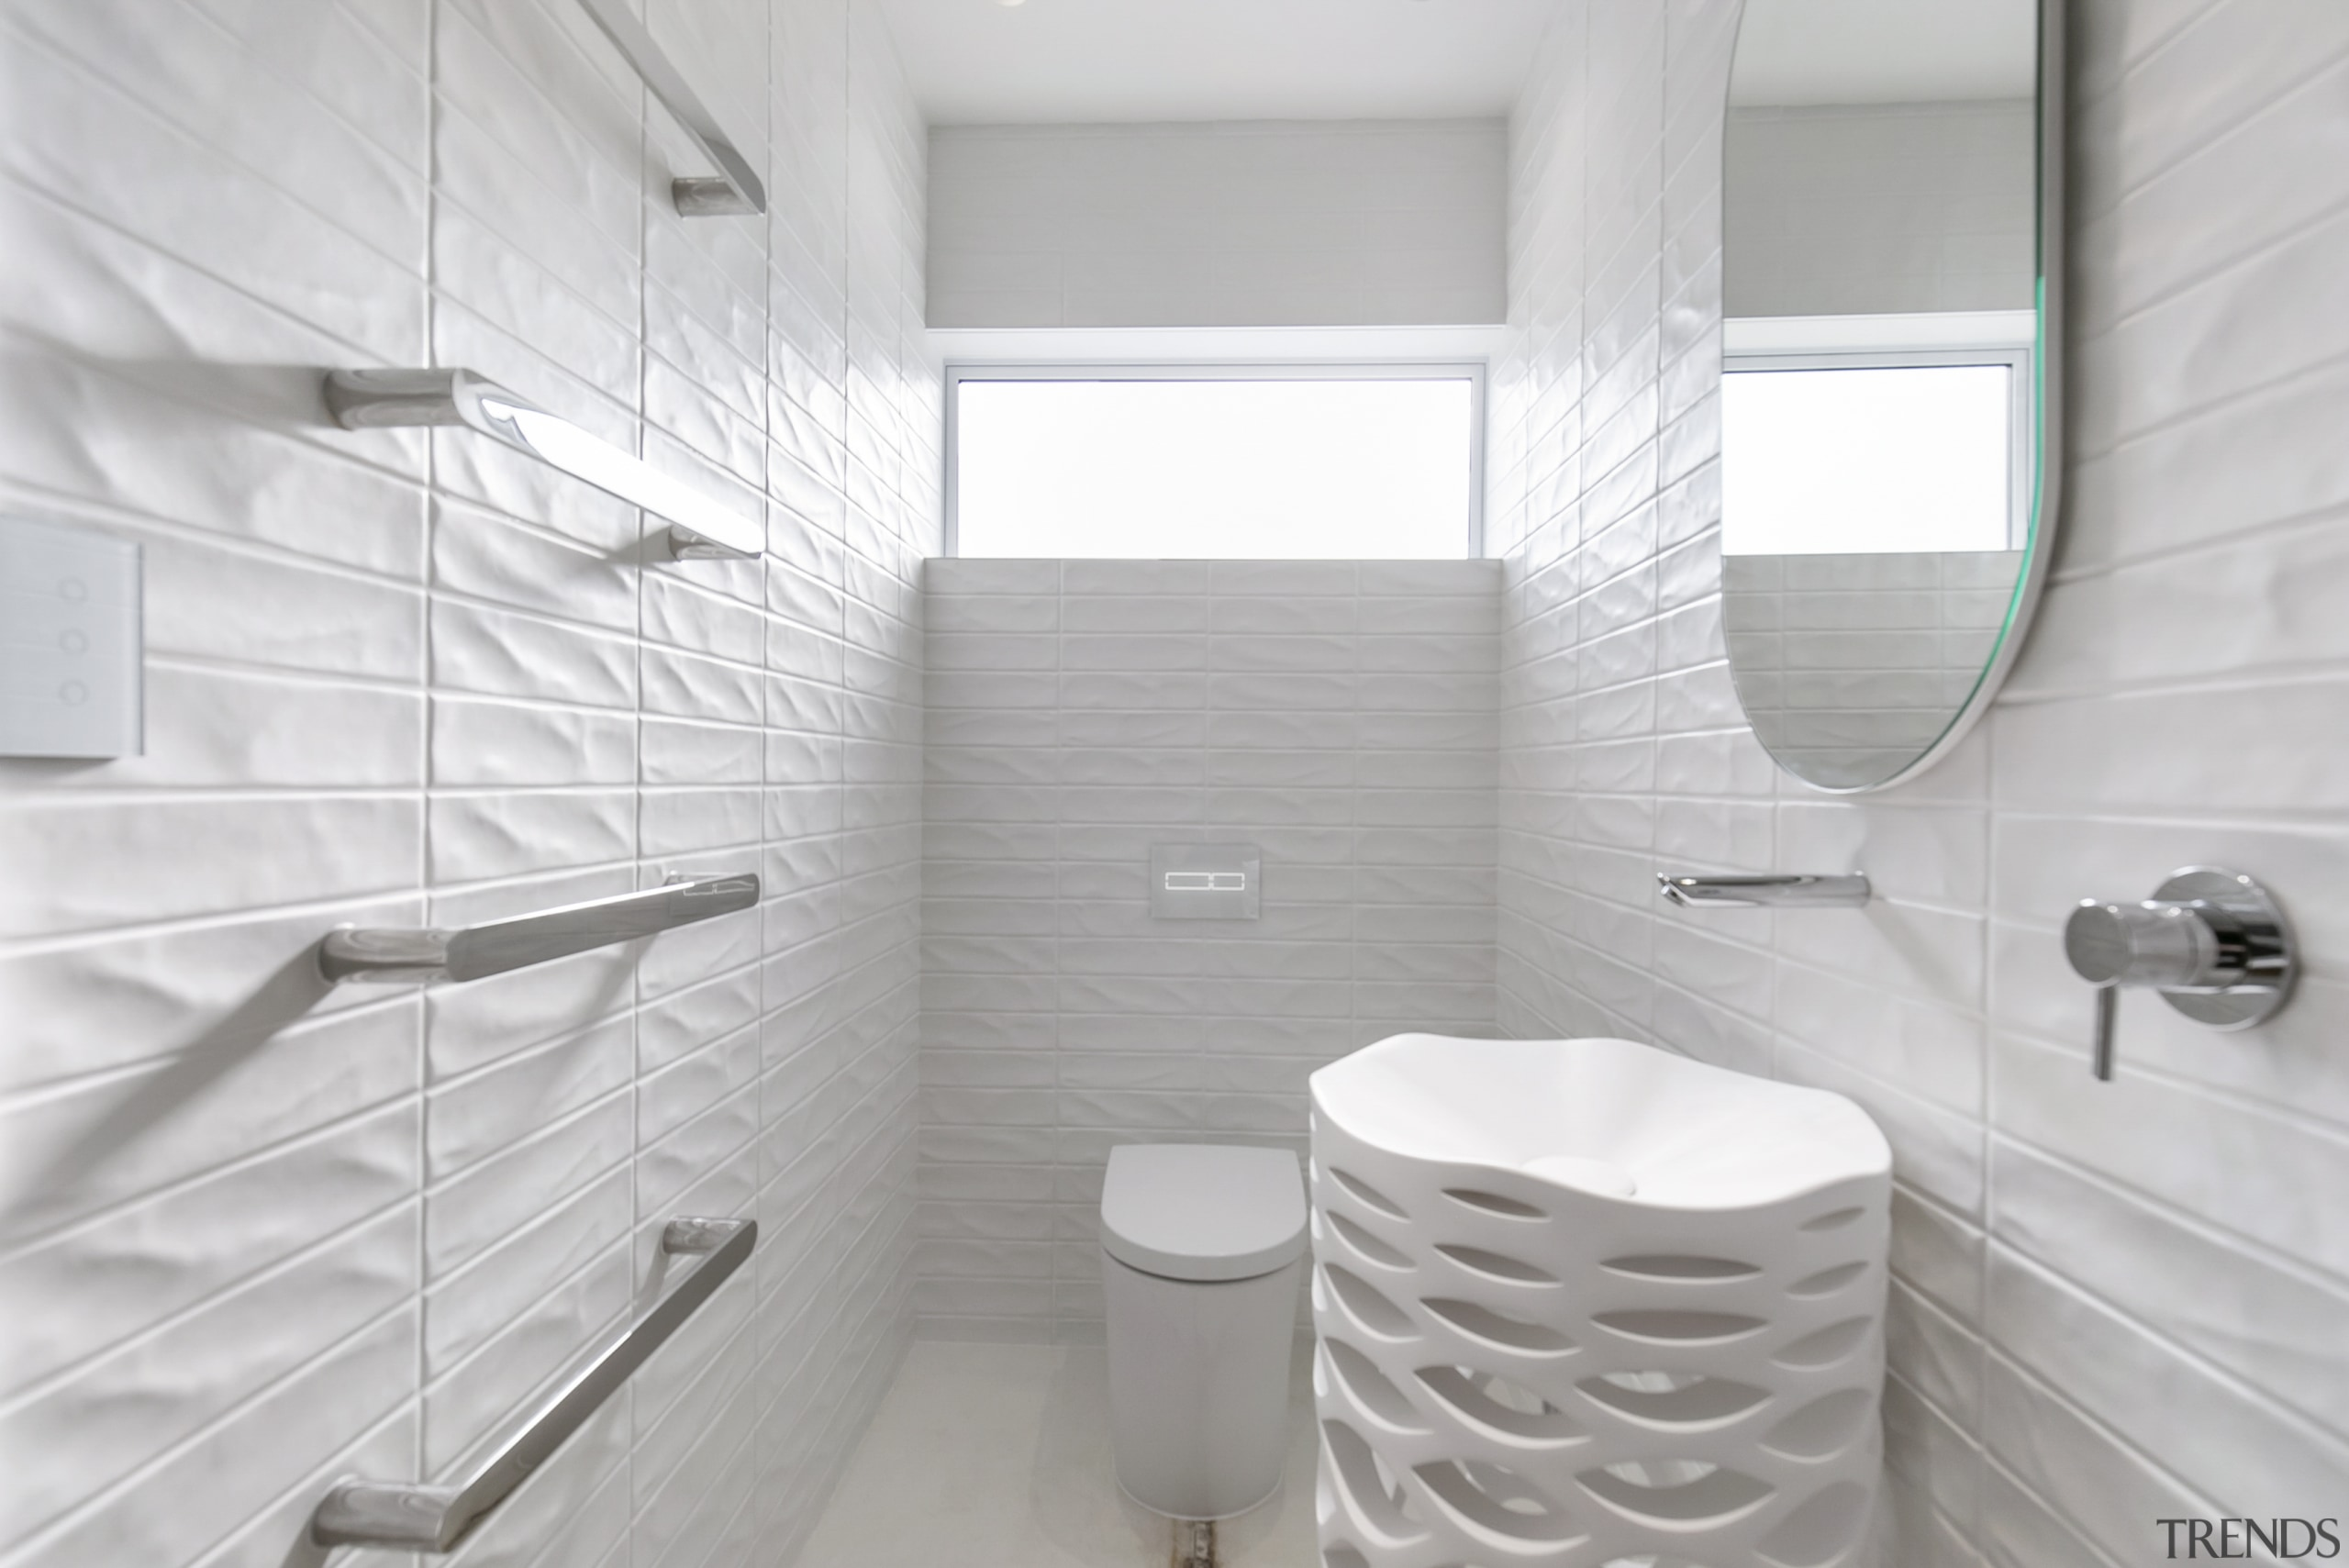 The tiles offer much more than a pristine